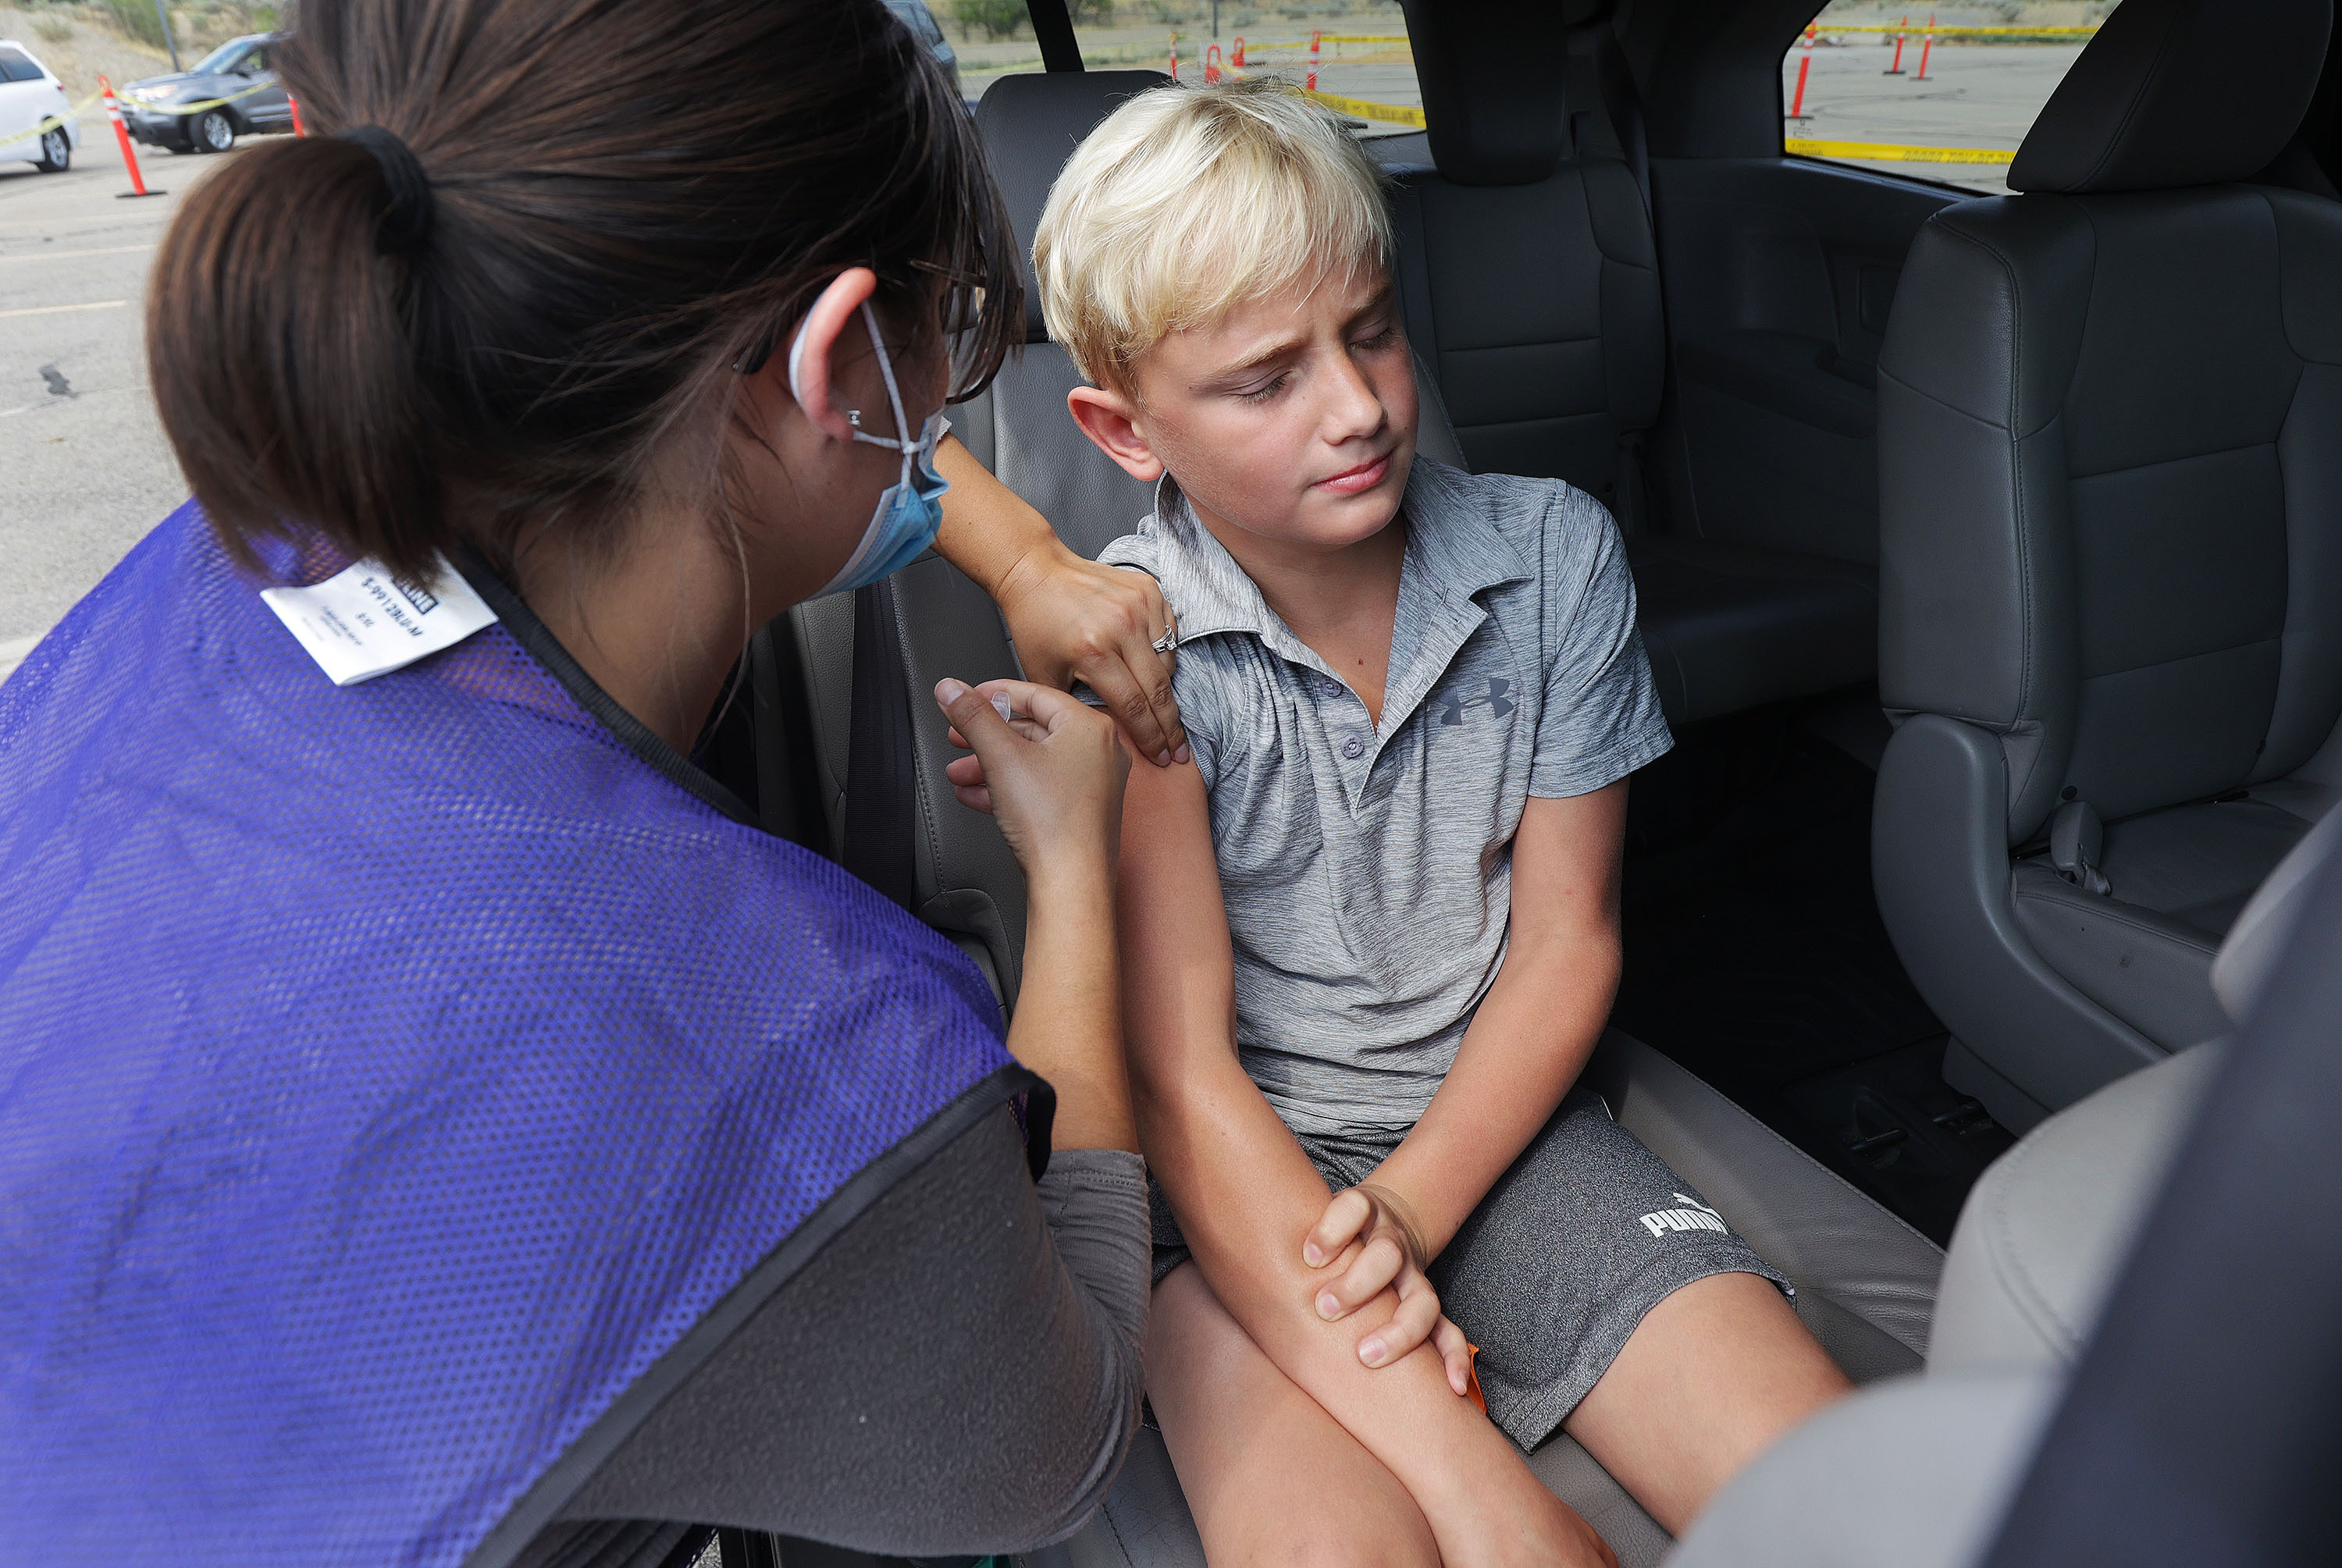 Utah Air National Guard medic Stephanie Young gives Max Lind, 12, a COVID-19 vaccine at Equestrian Park in Highland, Utah.